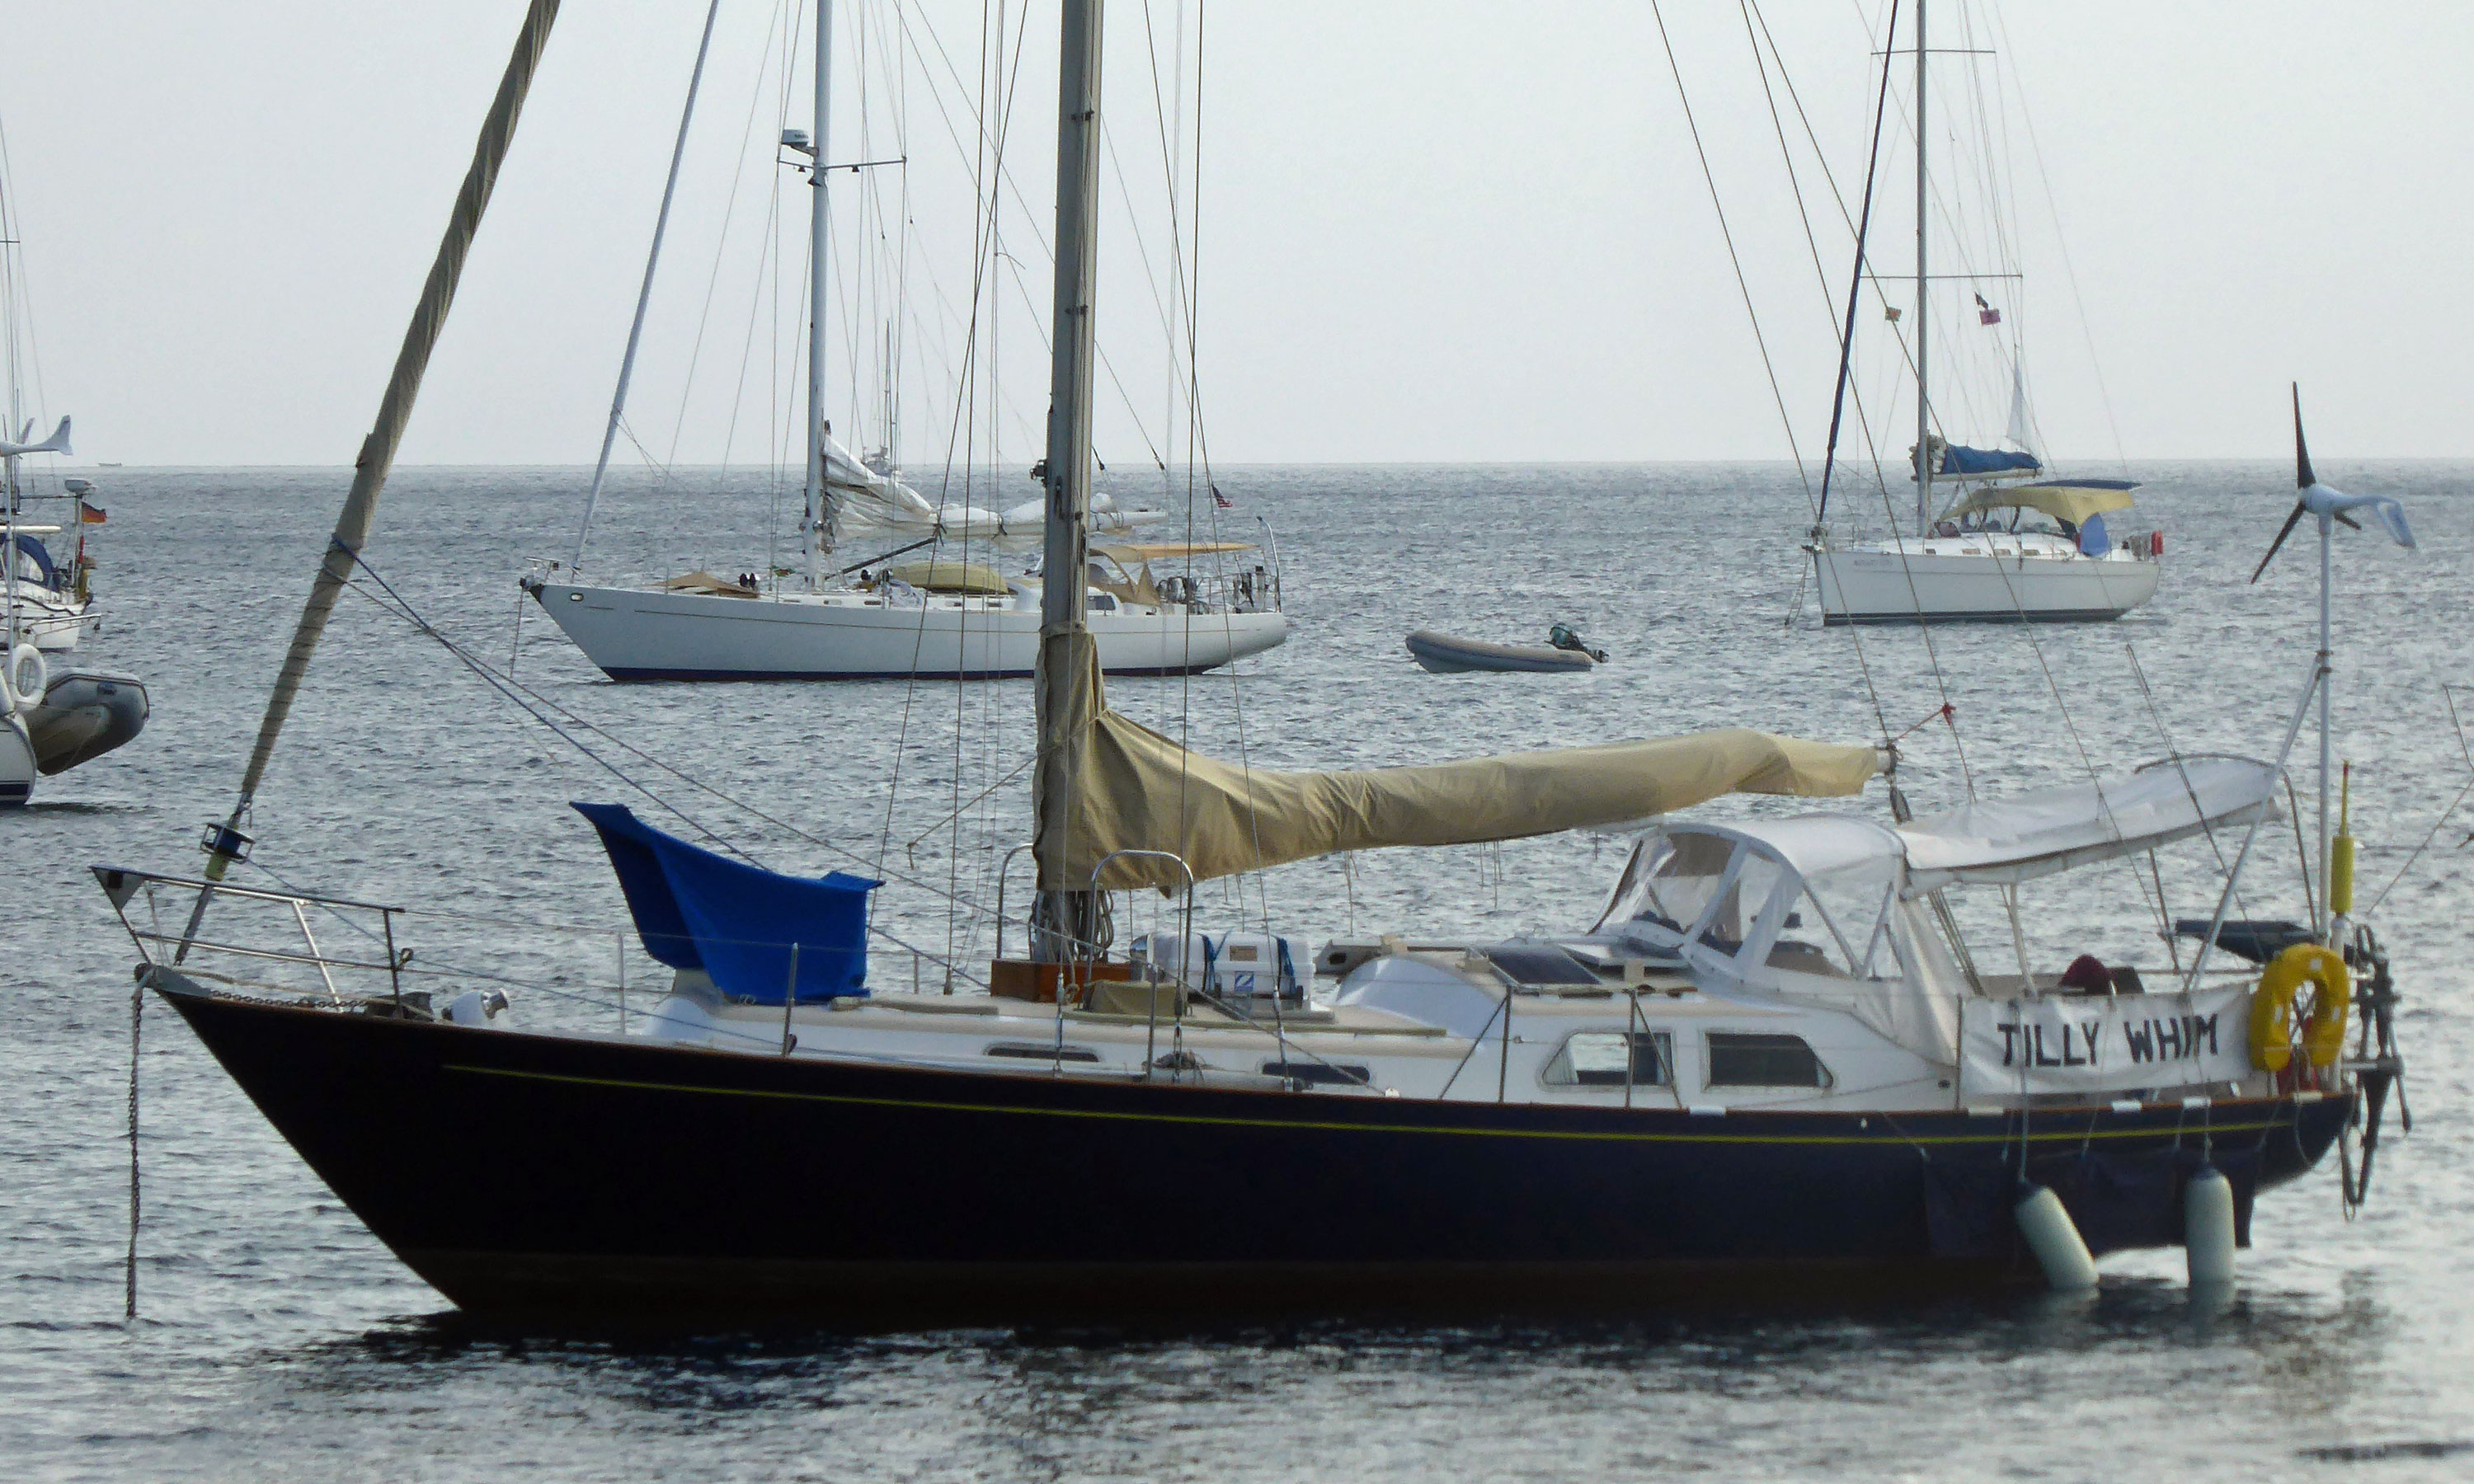 A Bowman 36 sailboat